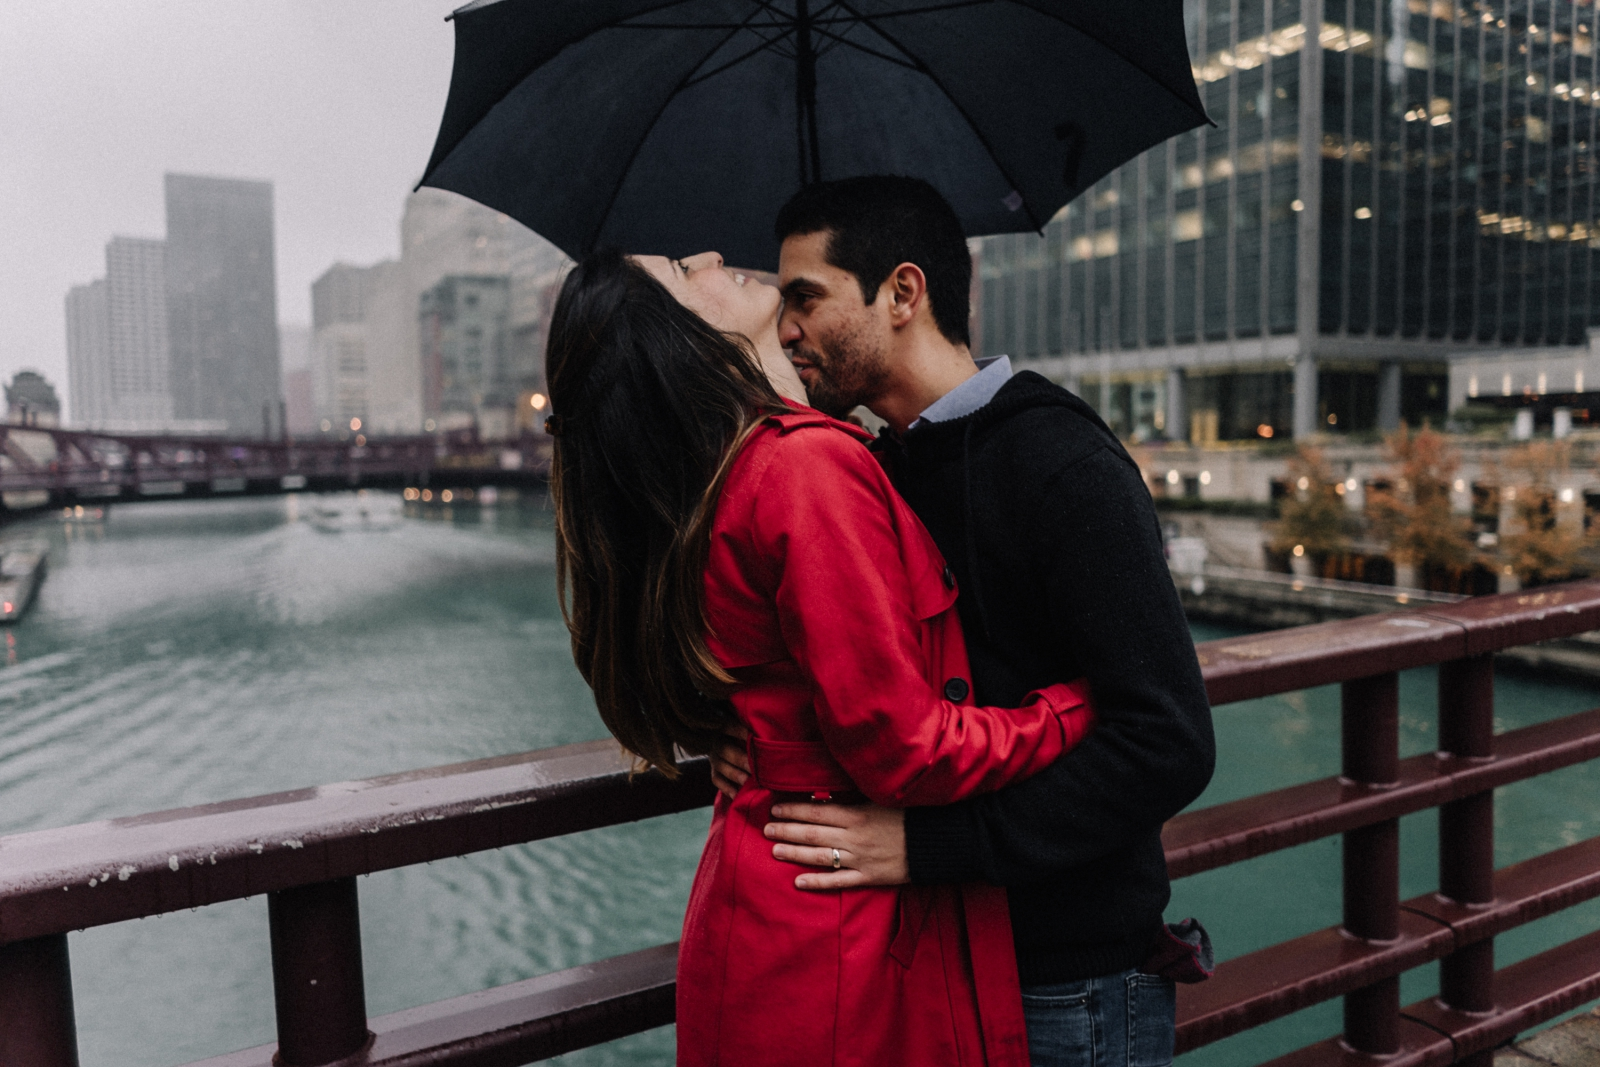 rainy day lovers | Chicago vacation photography | lisa kathan photography